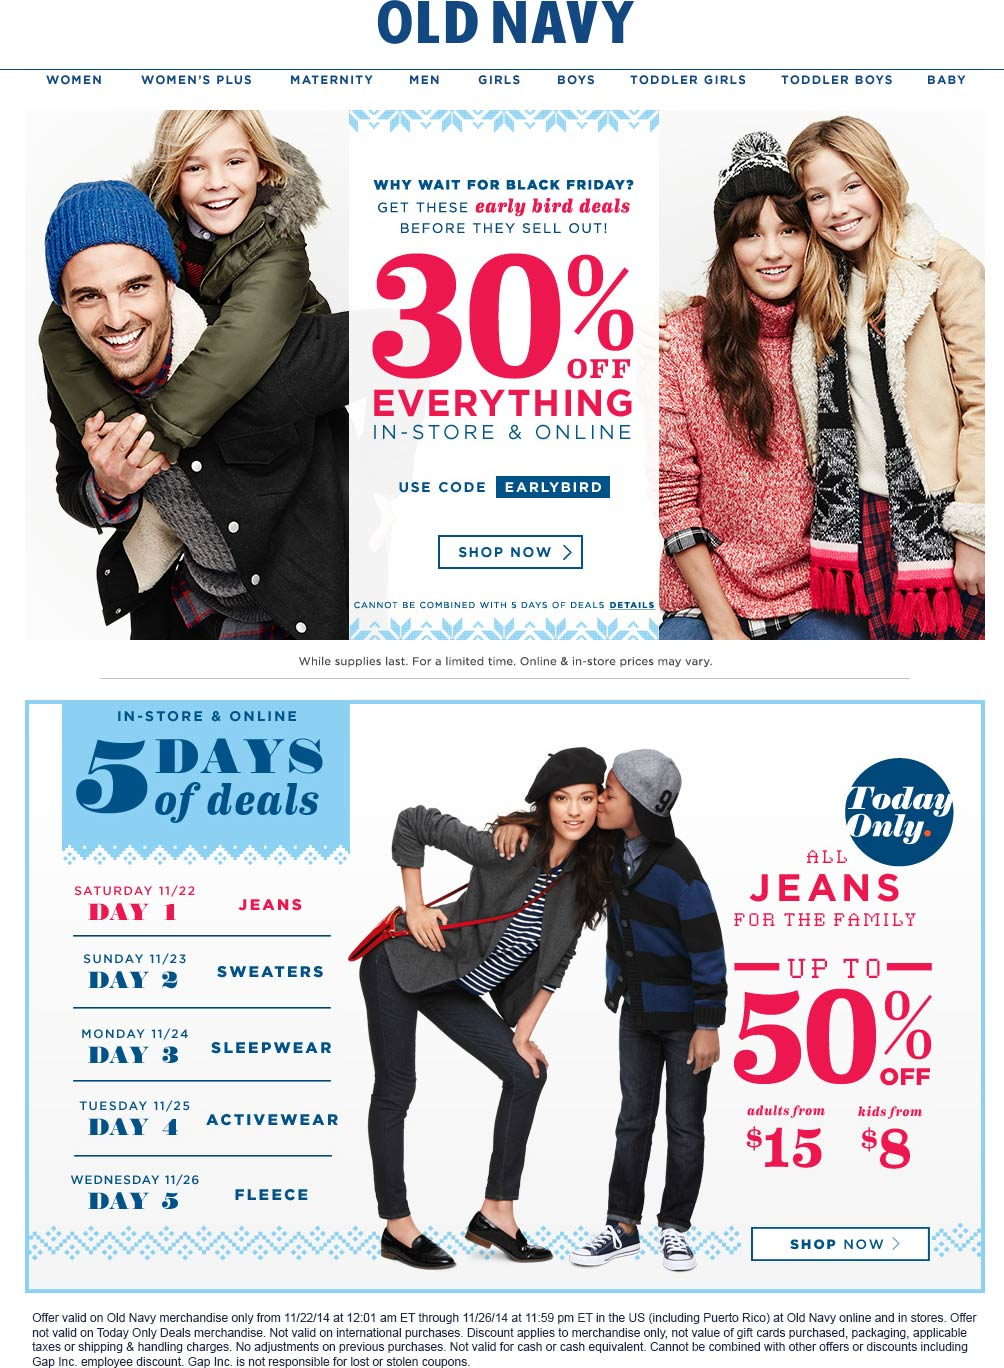 Old Navy Coupon January 2017 30% off everything at Old Navy, or online via promo code EARLYBIRD